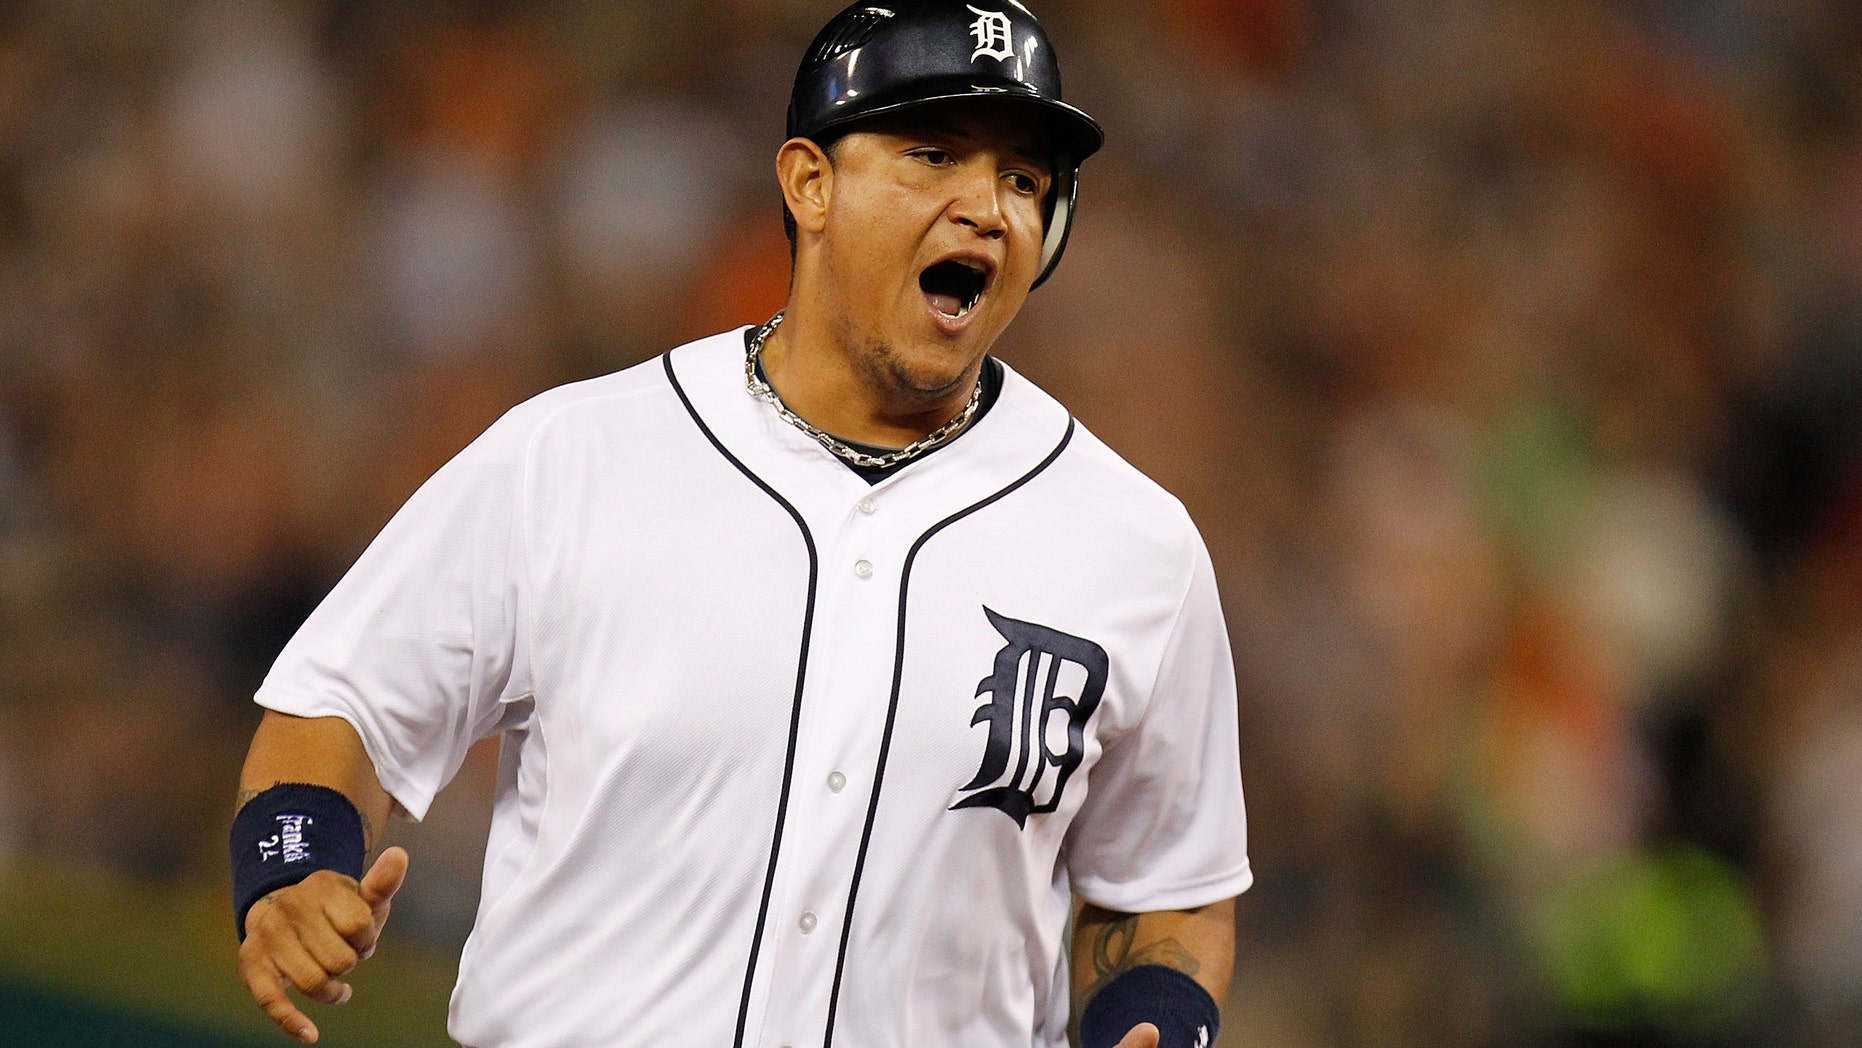 DETROIT, MI - SEPTEMBER 02: Miguel Cabrera #24 of the Detroit Tigers reacts to a sixth inning home run by Delmon Young #21 while playing the Chicago White Sox at Comerica Park on September 2, 2012 in Detroit, Michigan.  (Photo by Gregory Shamus/Getty Images)